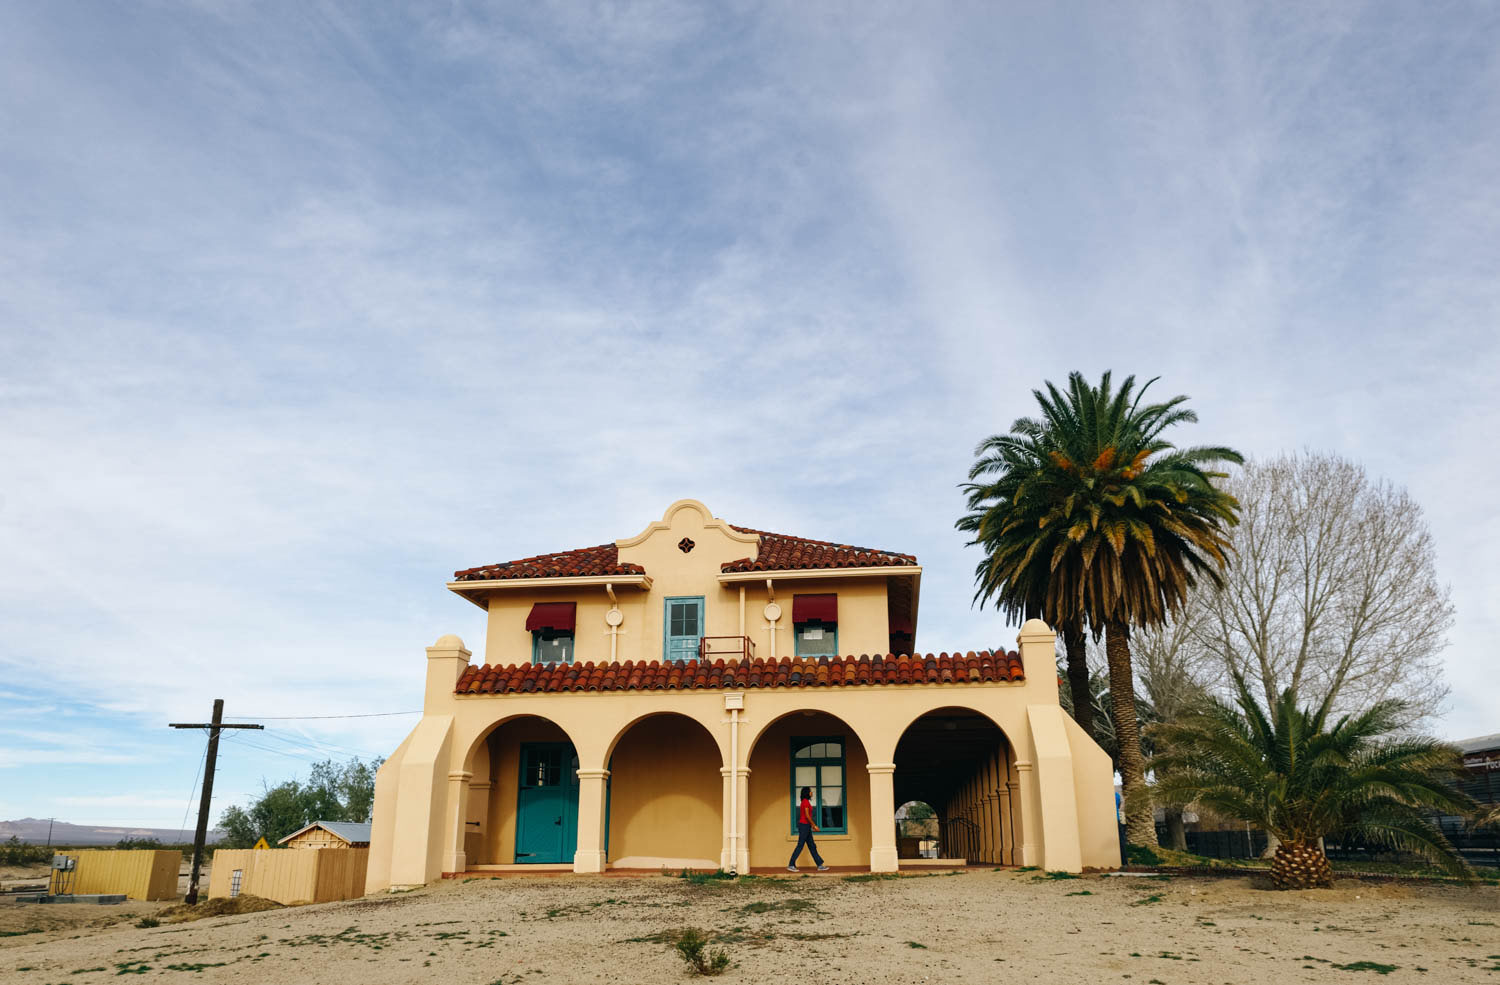 The Kelso Depot's beautiful Spanish Colonial revival style architecture.